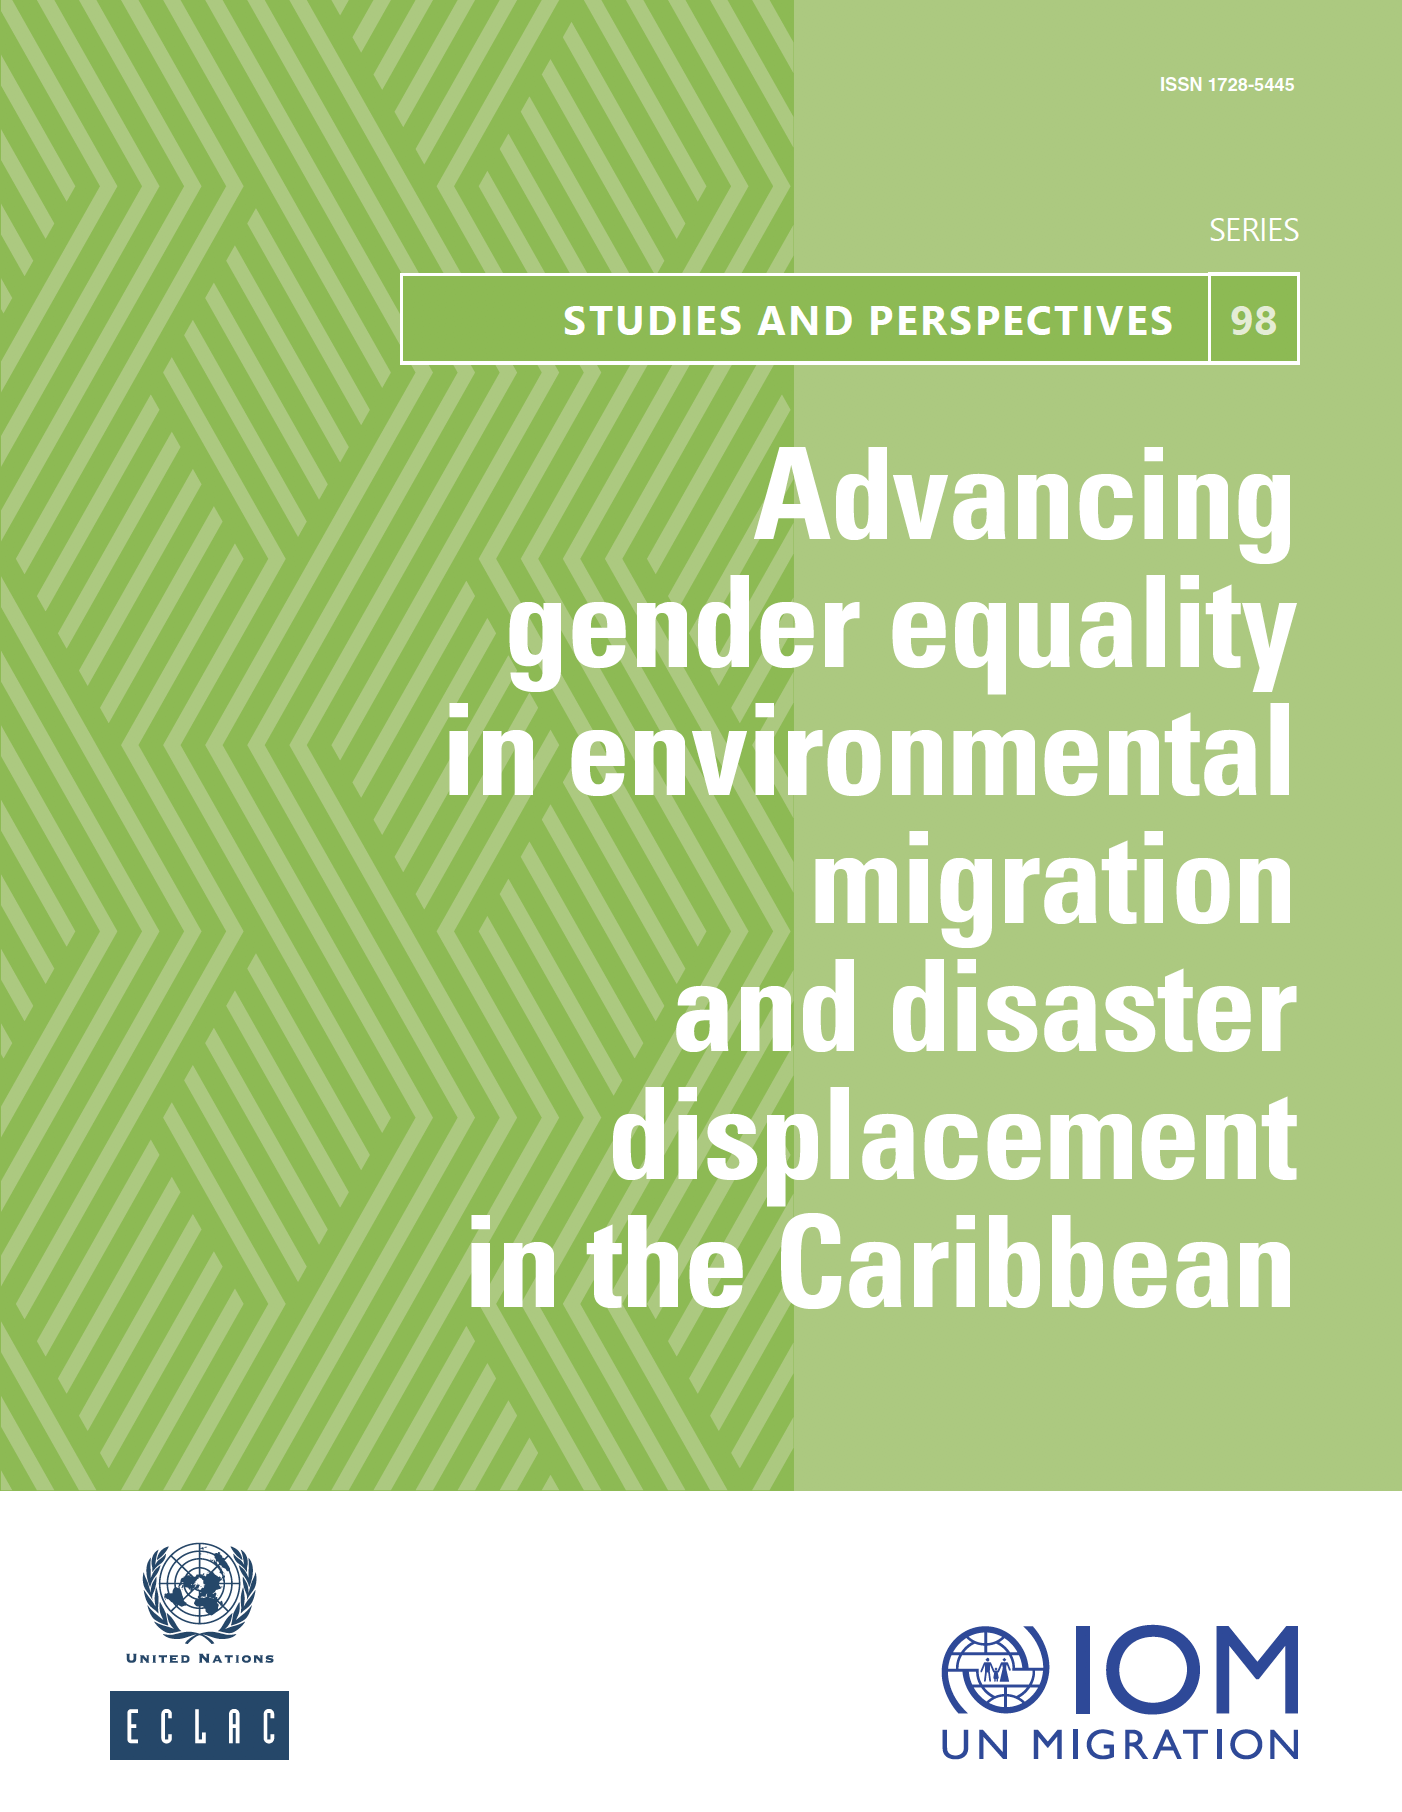 Advancing gender equality in environmental migration and disaster displacement in the Caribbean